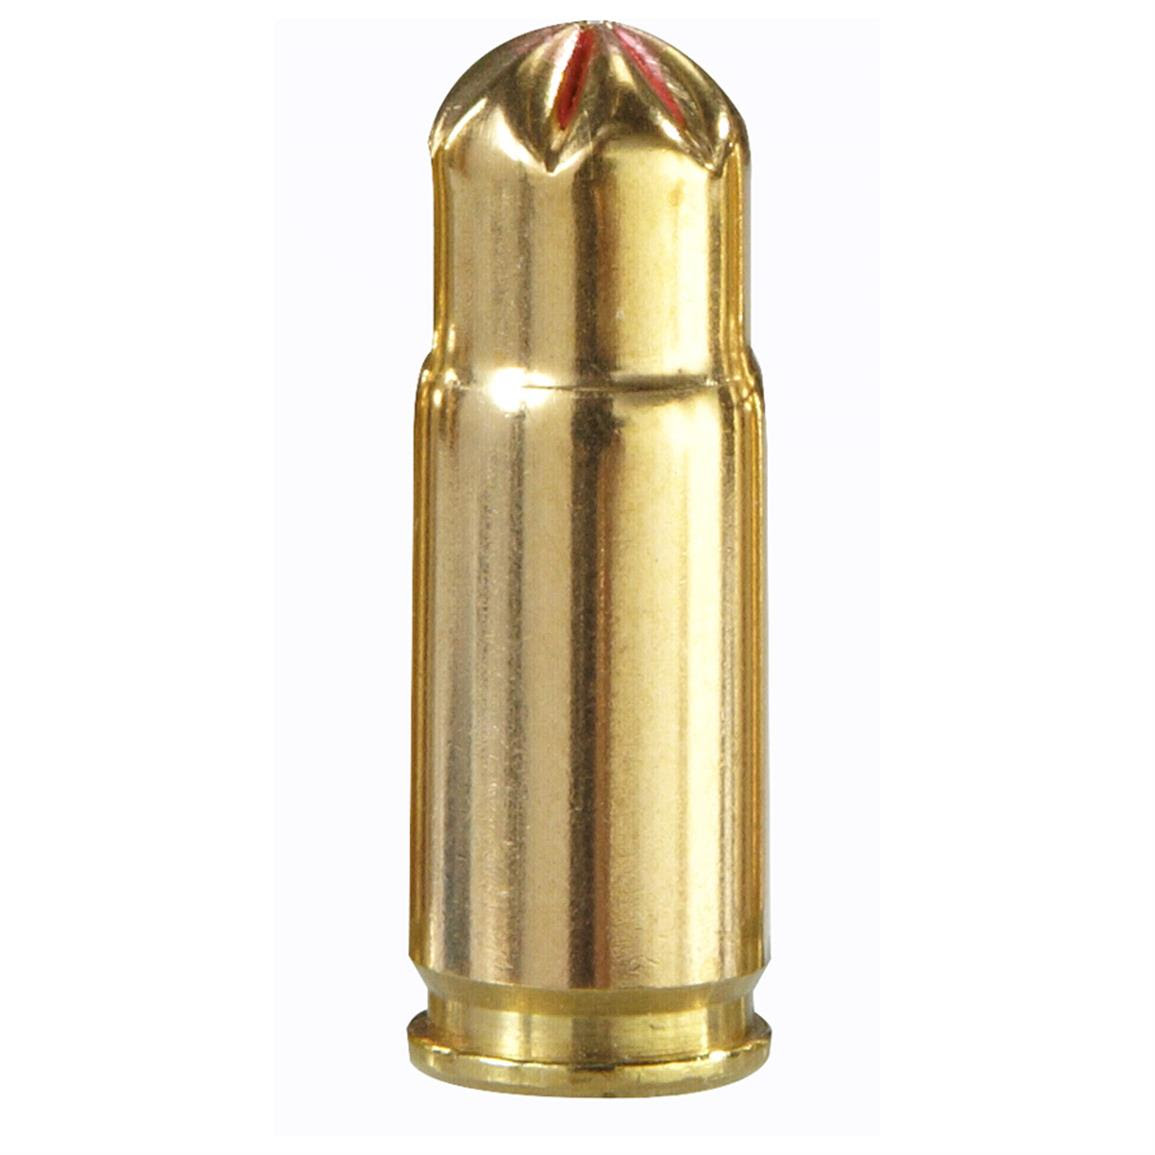 PPU, 9mm Luger, Standard Blank, 50 Rounds - 222527, 9mm Ammo at ...